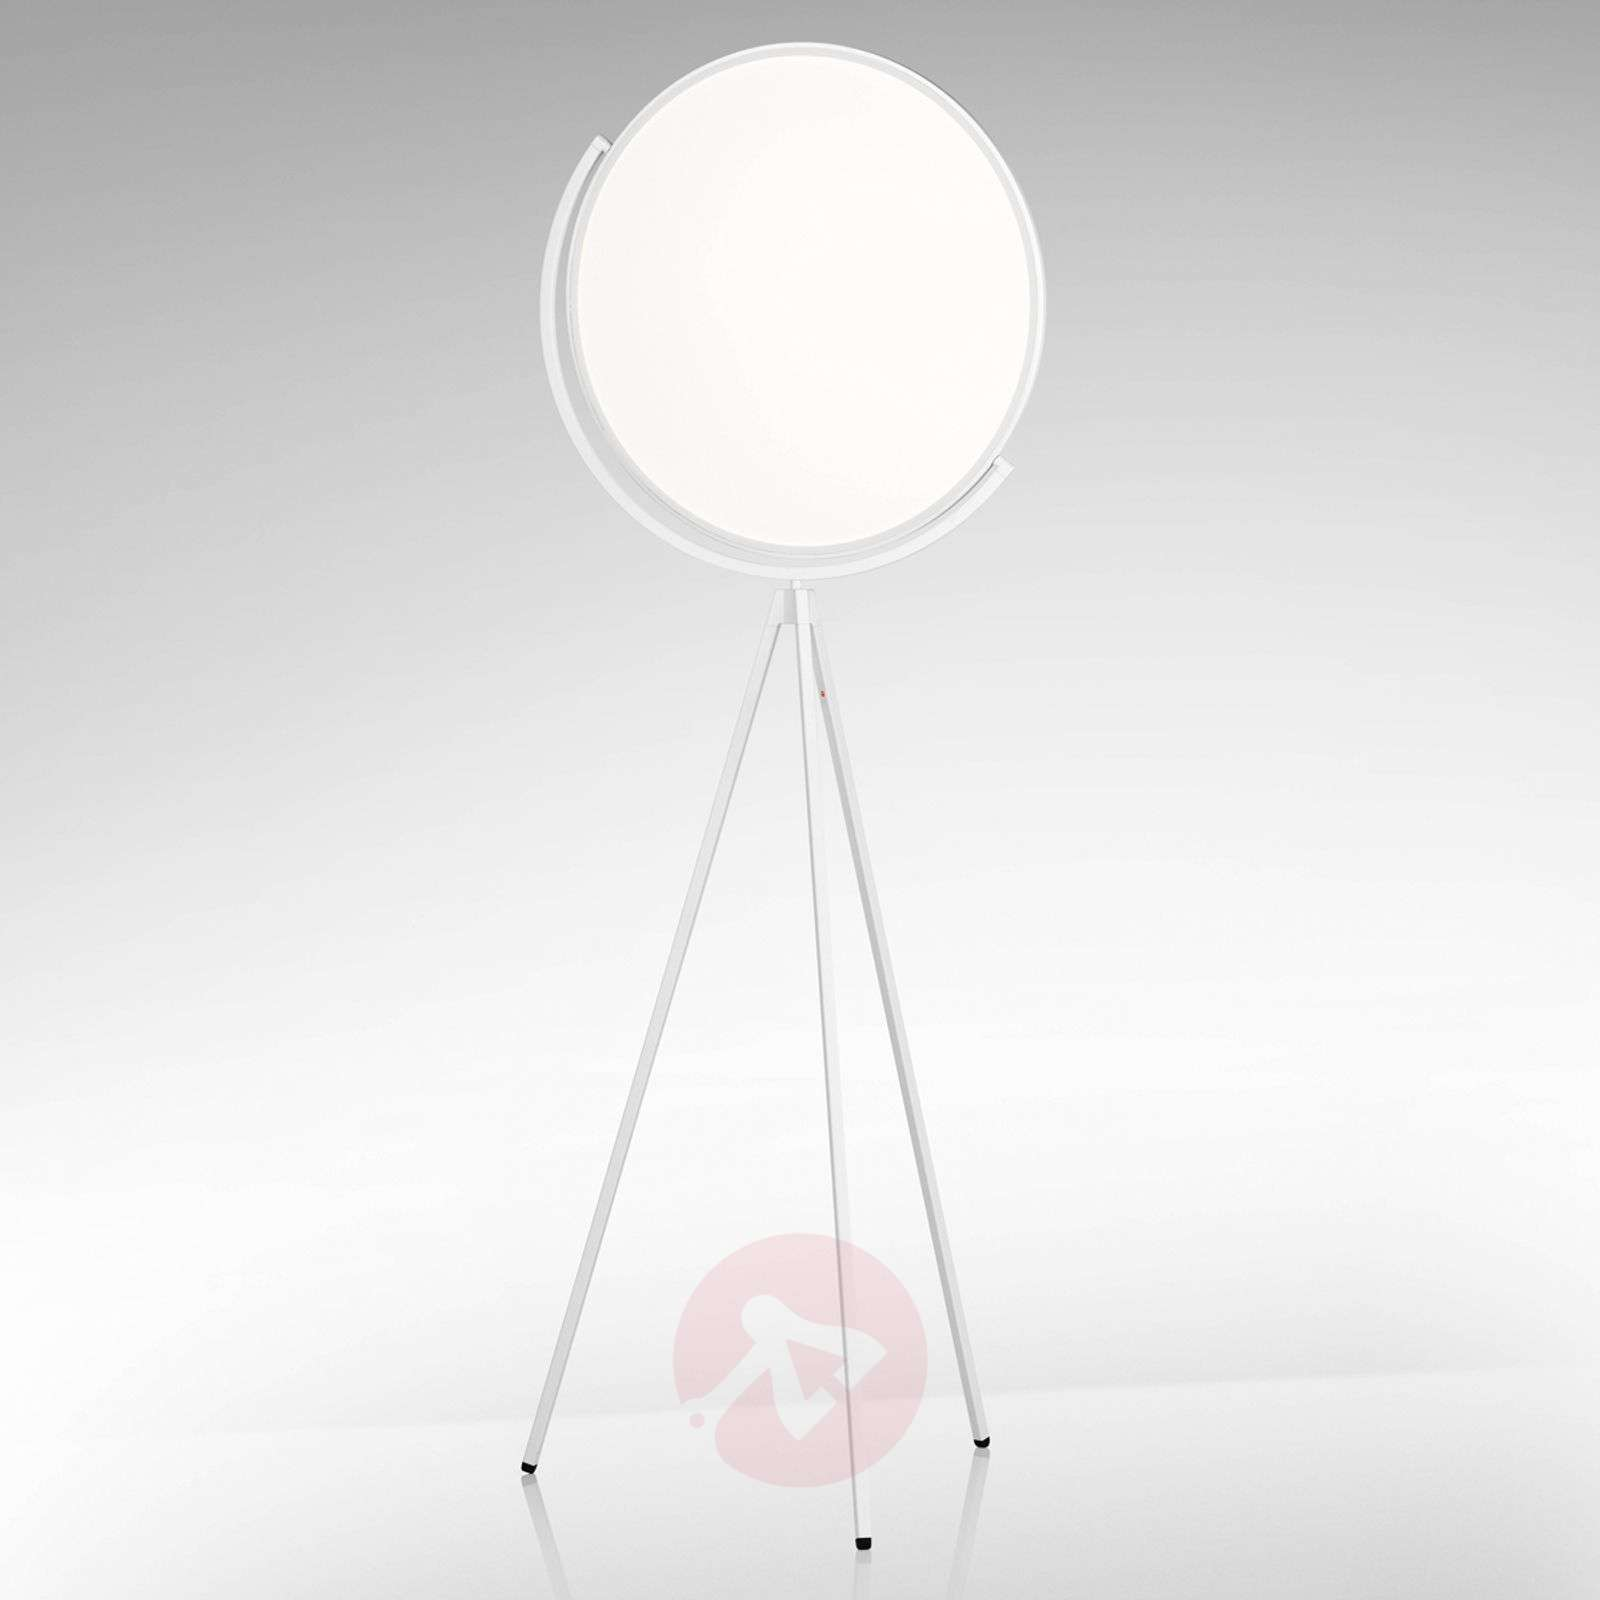 White designer floor lamp Superloon with LED-3510357-01